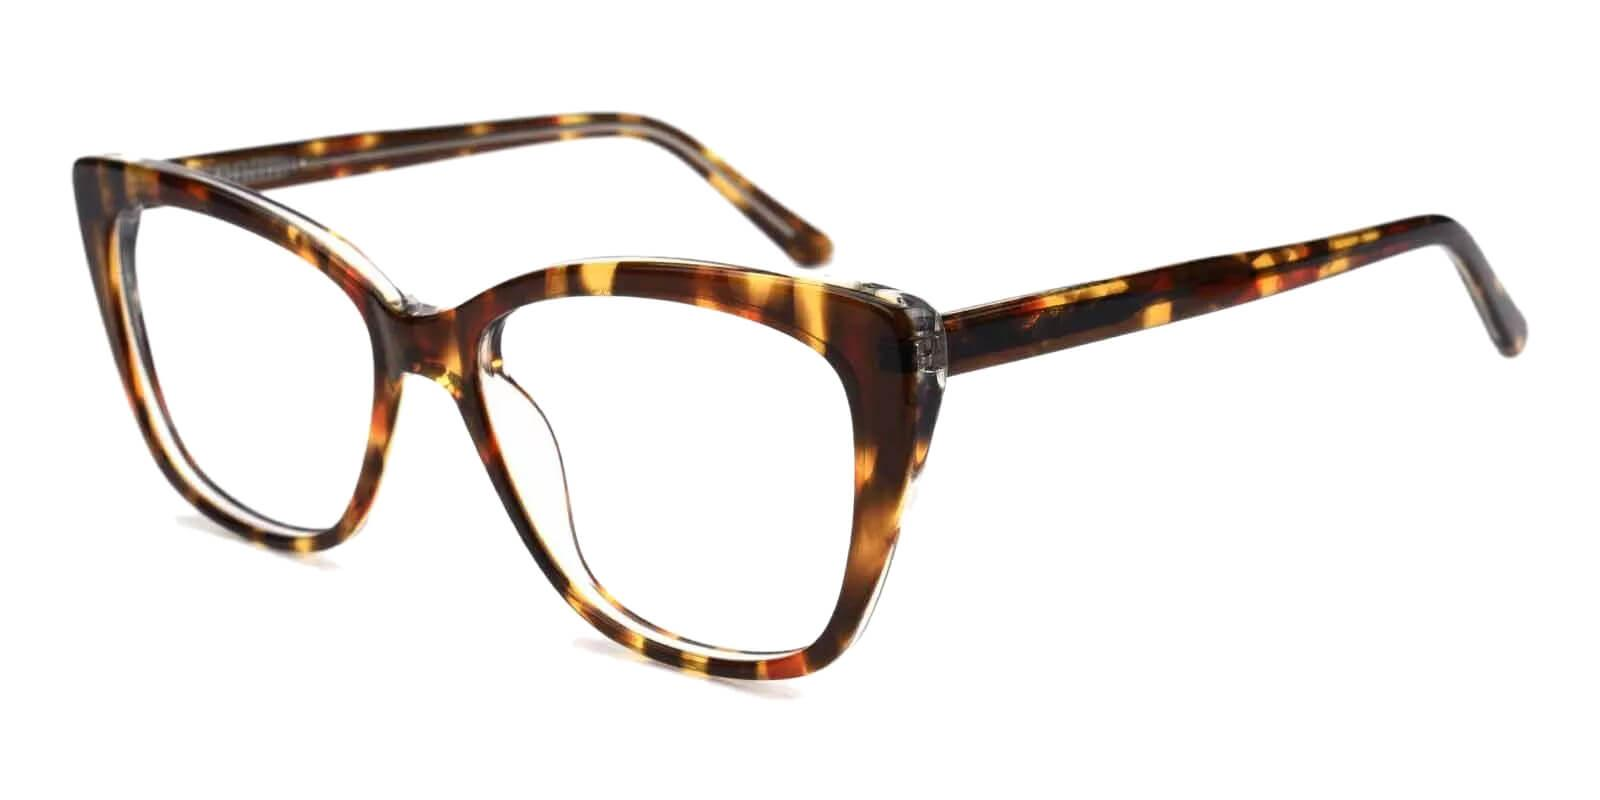 Truda Tortoise Acetate Eyeglasses , Fashion , SpringHinges , UniversalBridgeFit Frames from ABBE Glasses